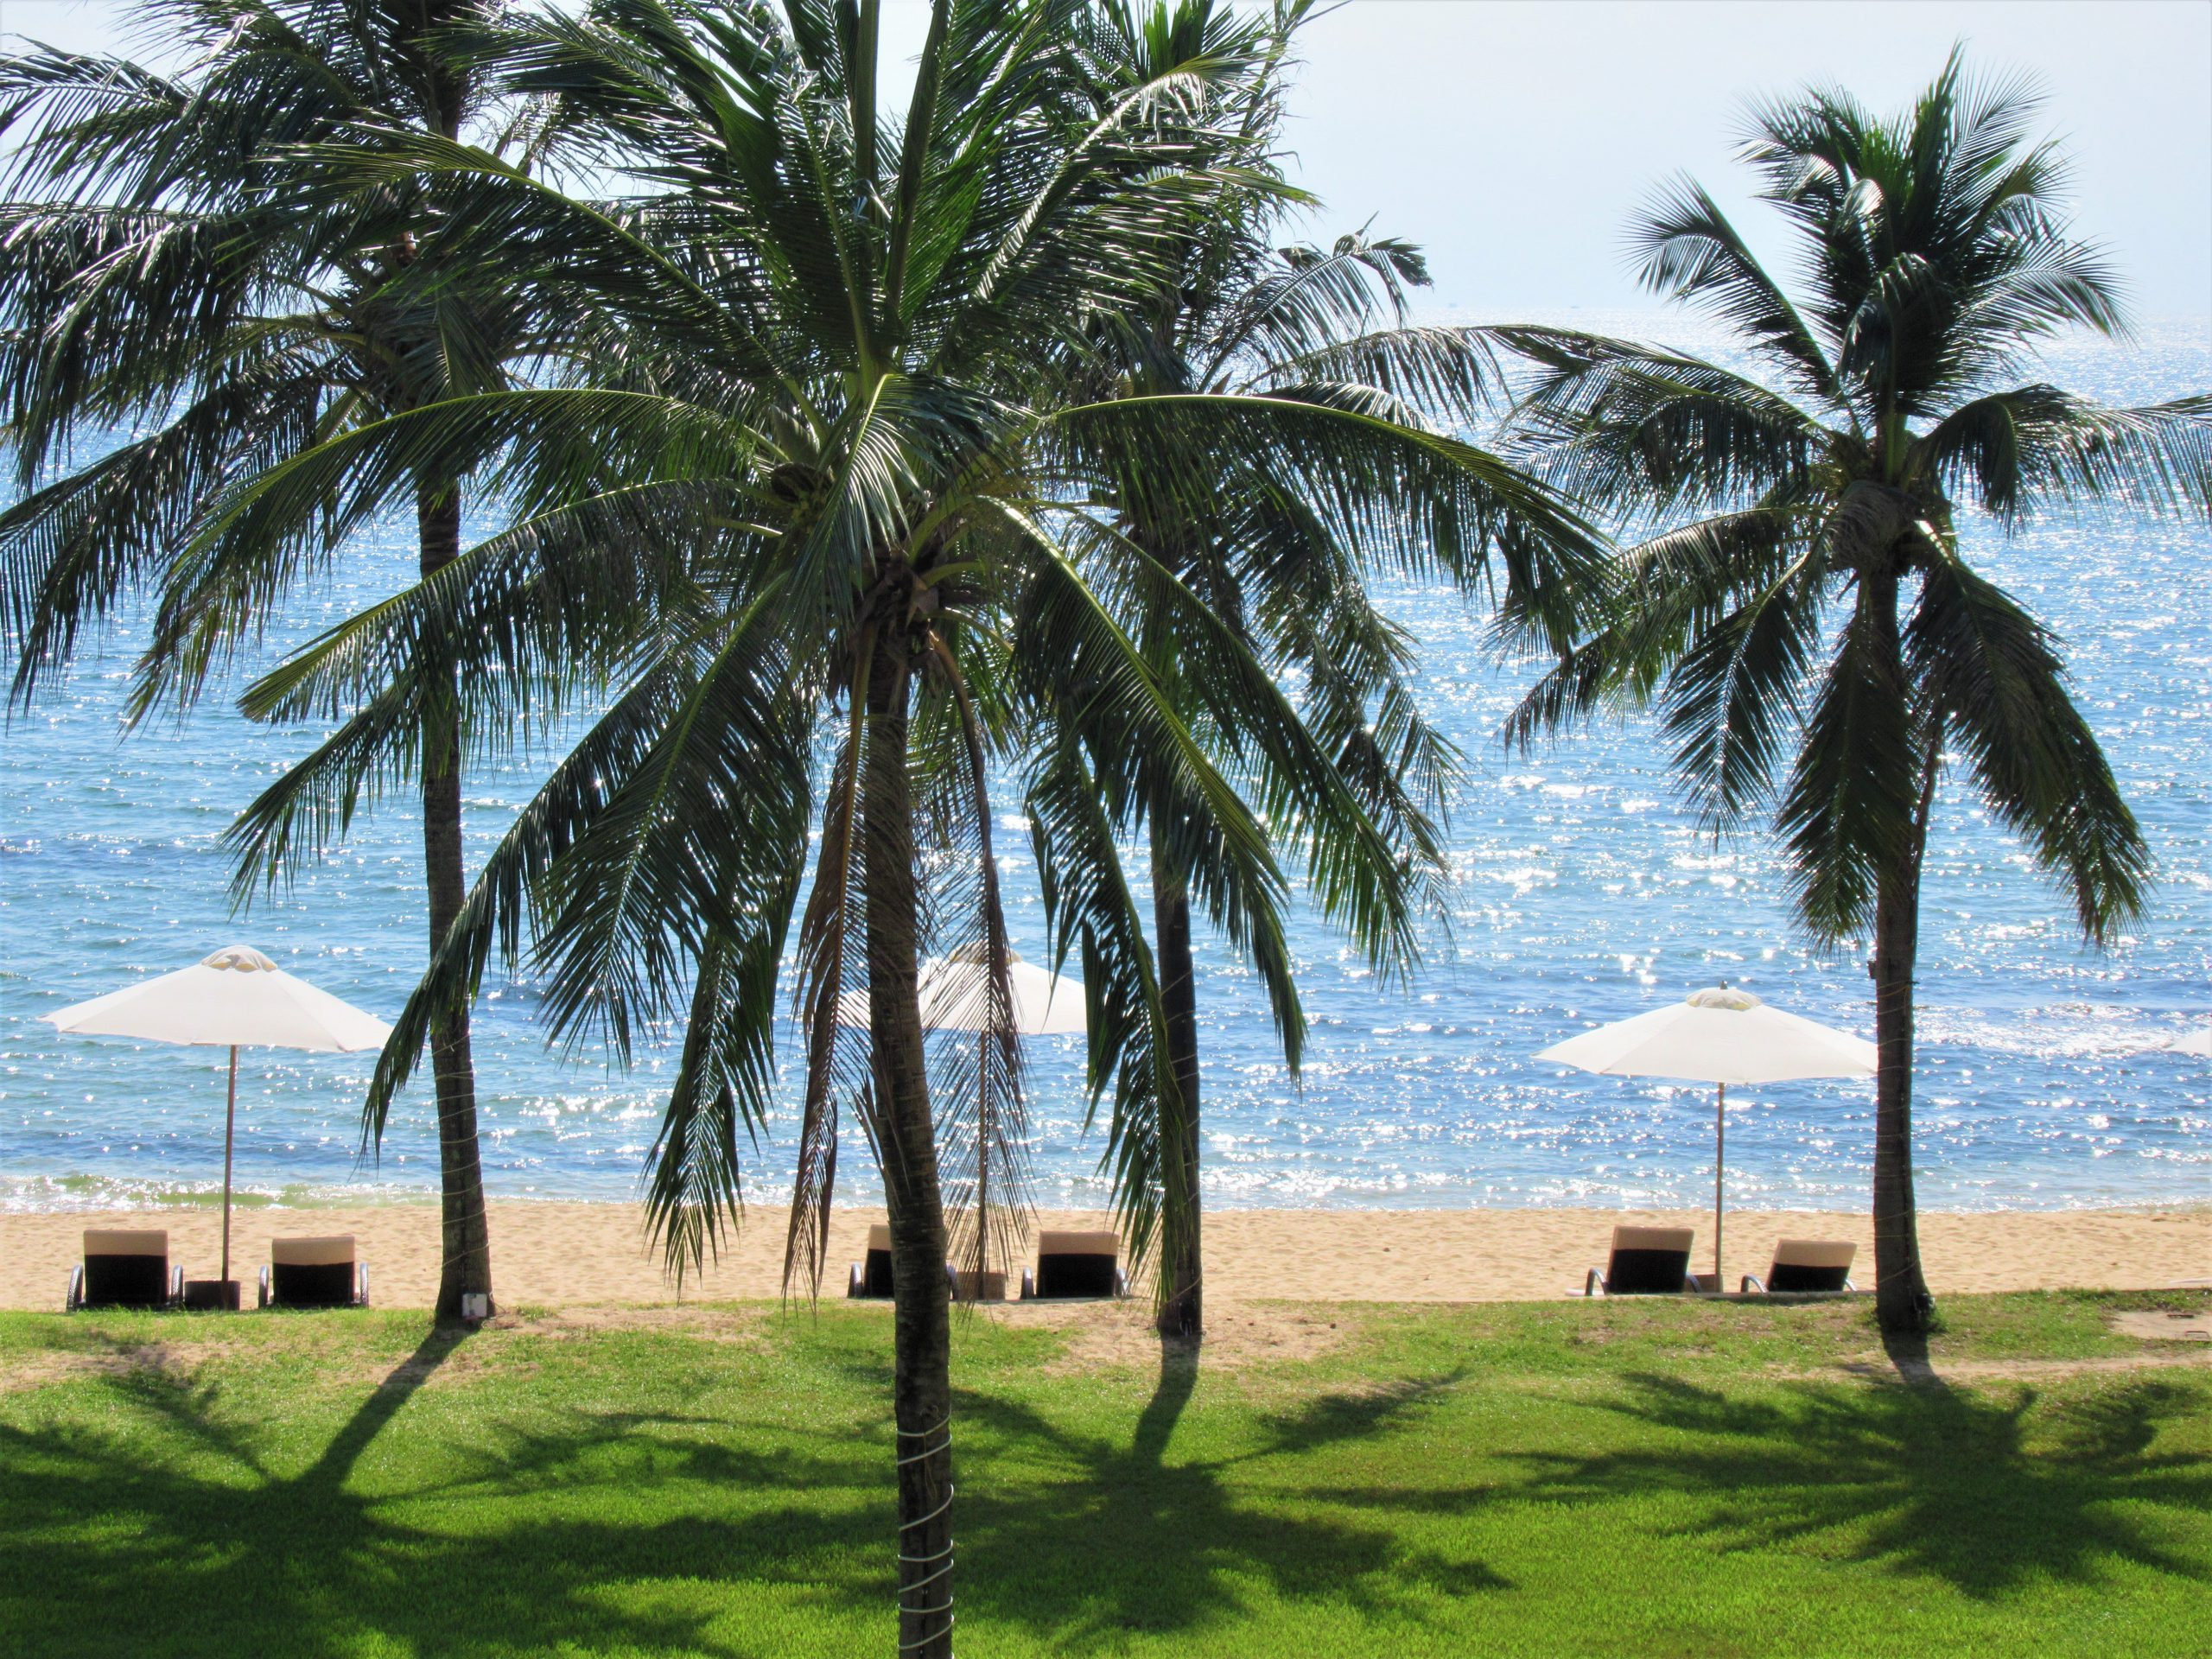 Private beach, The Shells Resort, Phu Quoc Island, Vietnam